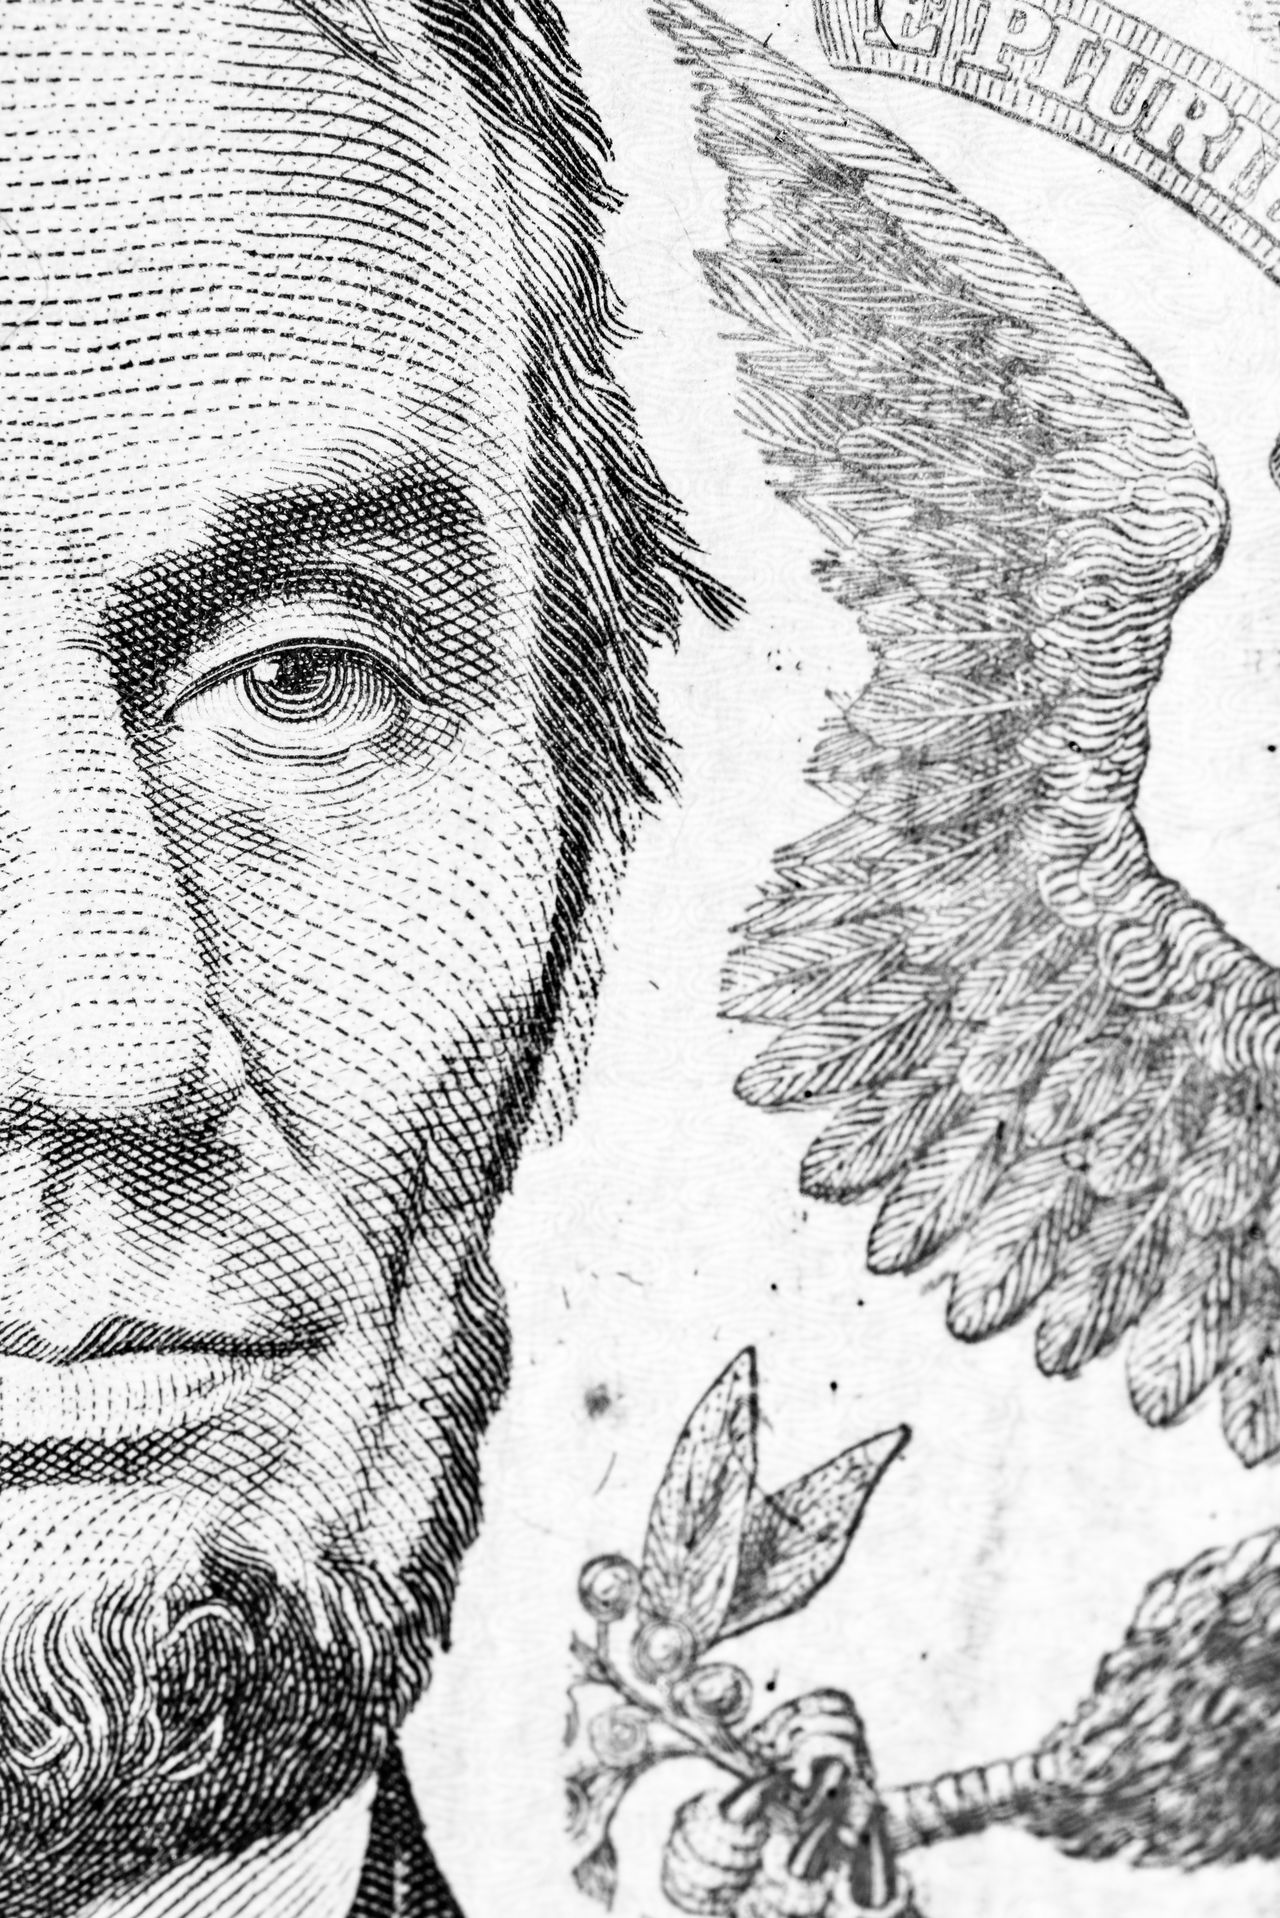 Monochrome detail of a five dollar note. 5 Dollars America Capitalism Cash Close-up Detail Dollars Engraved Image Human Face Lincoln Money Monochrome Multi-layered Effect No People Note USA President